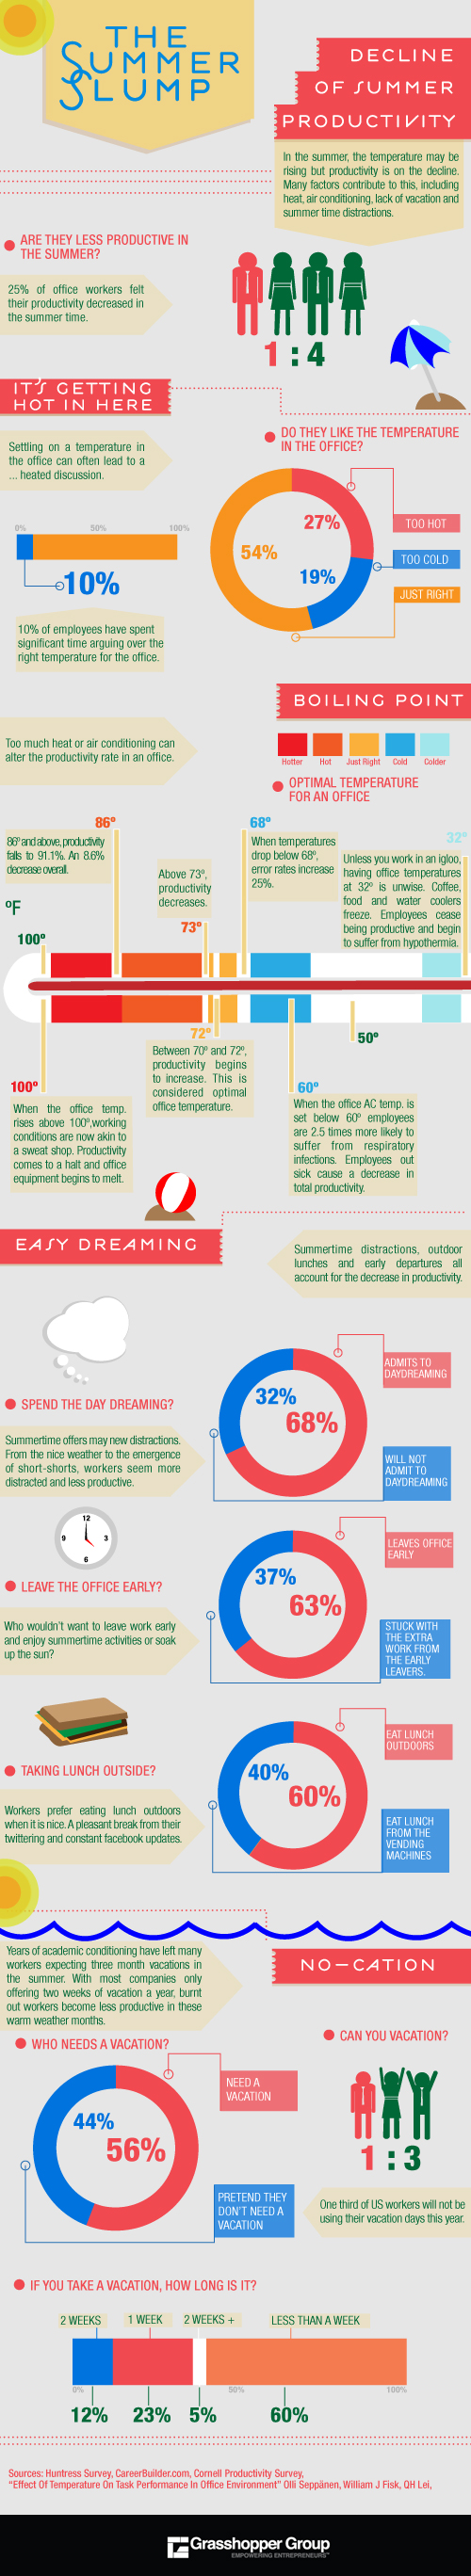 The Summer Slump Infographic